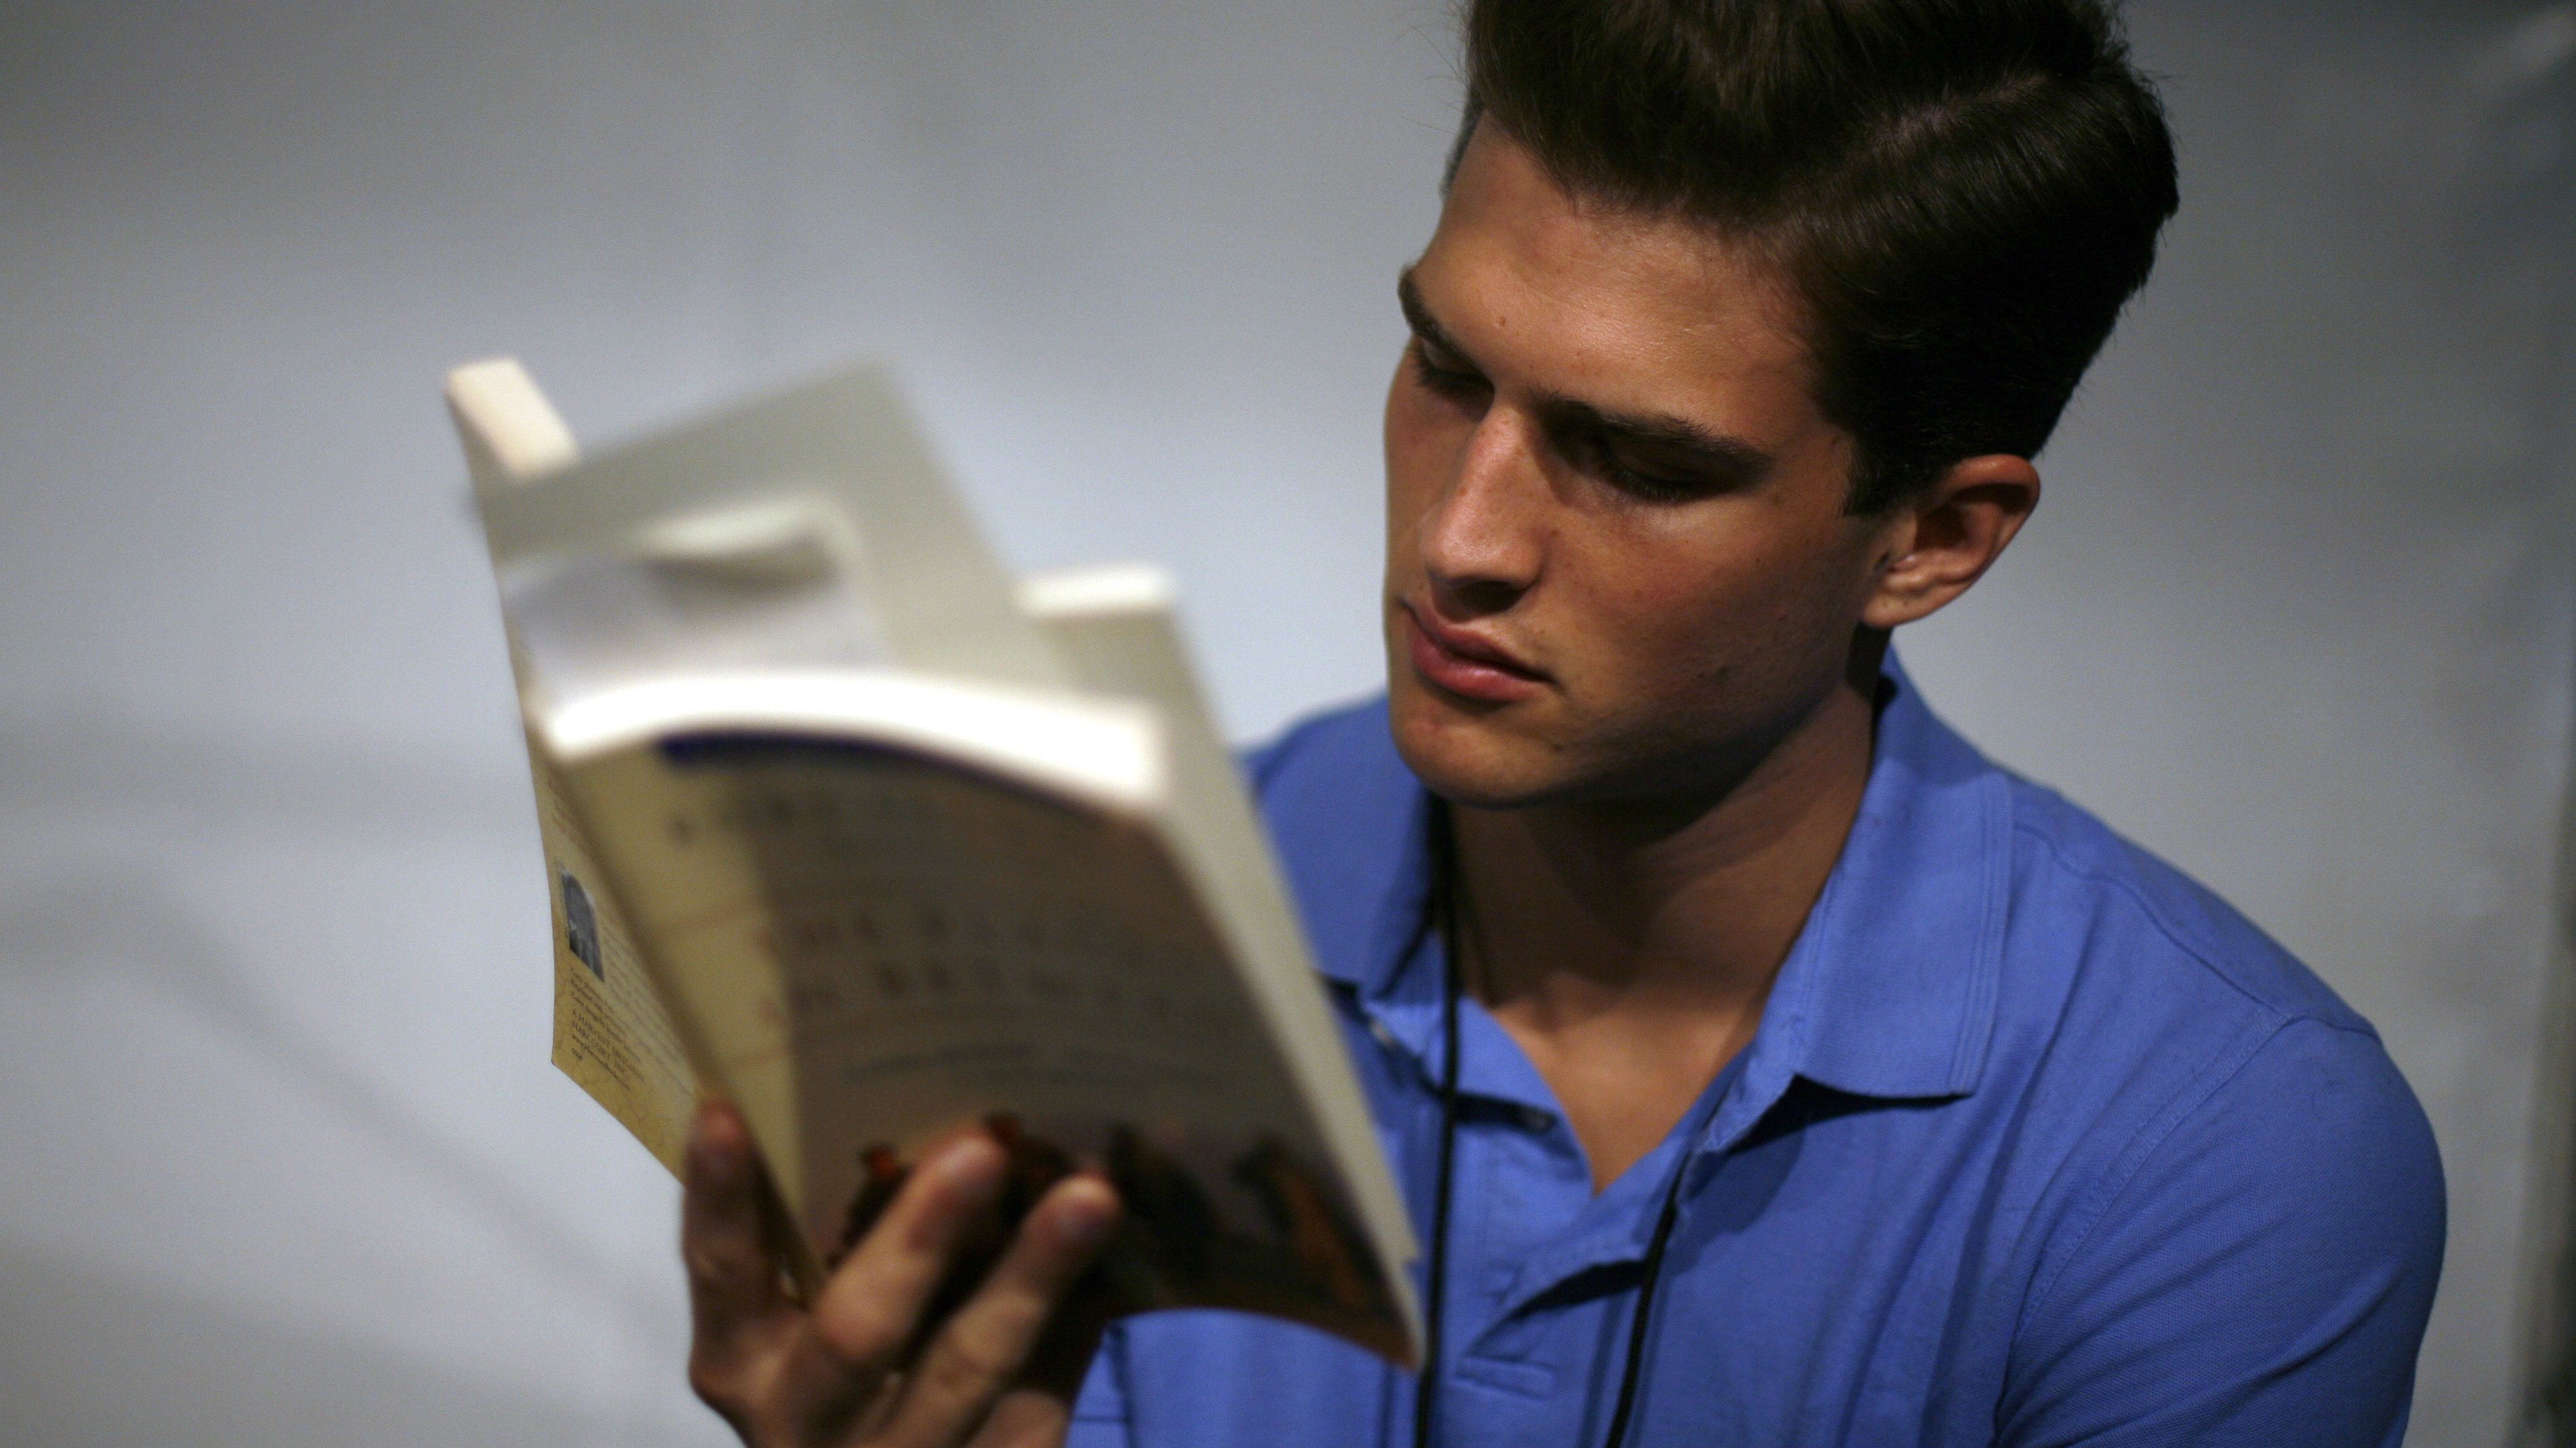 man-with-book